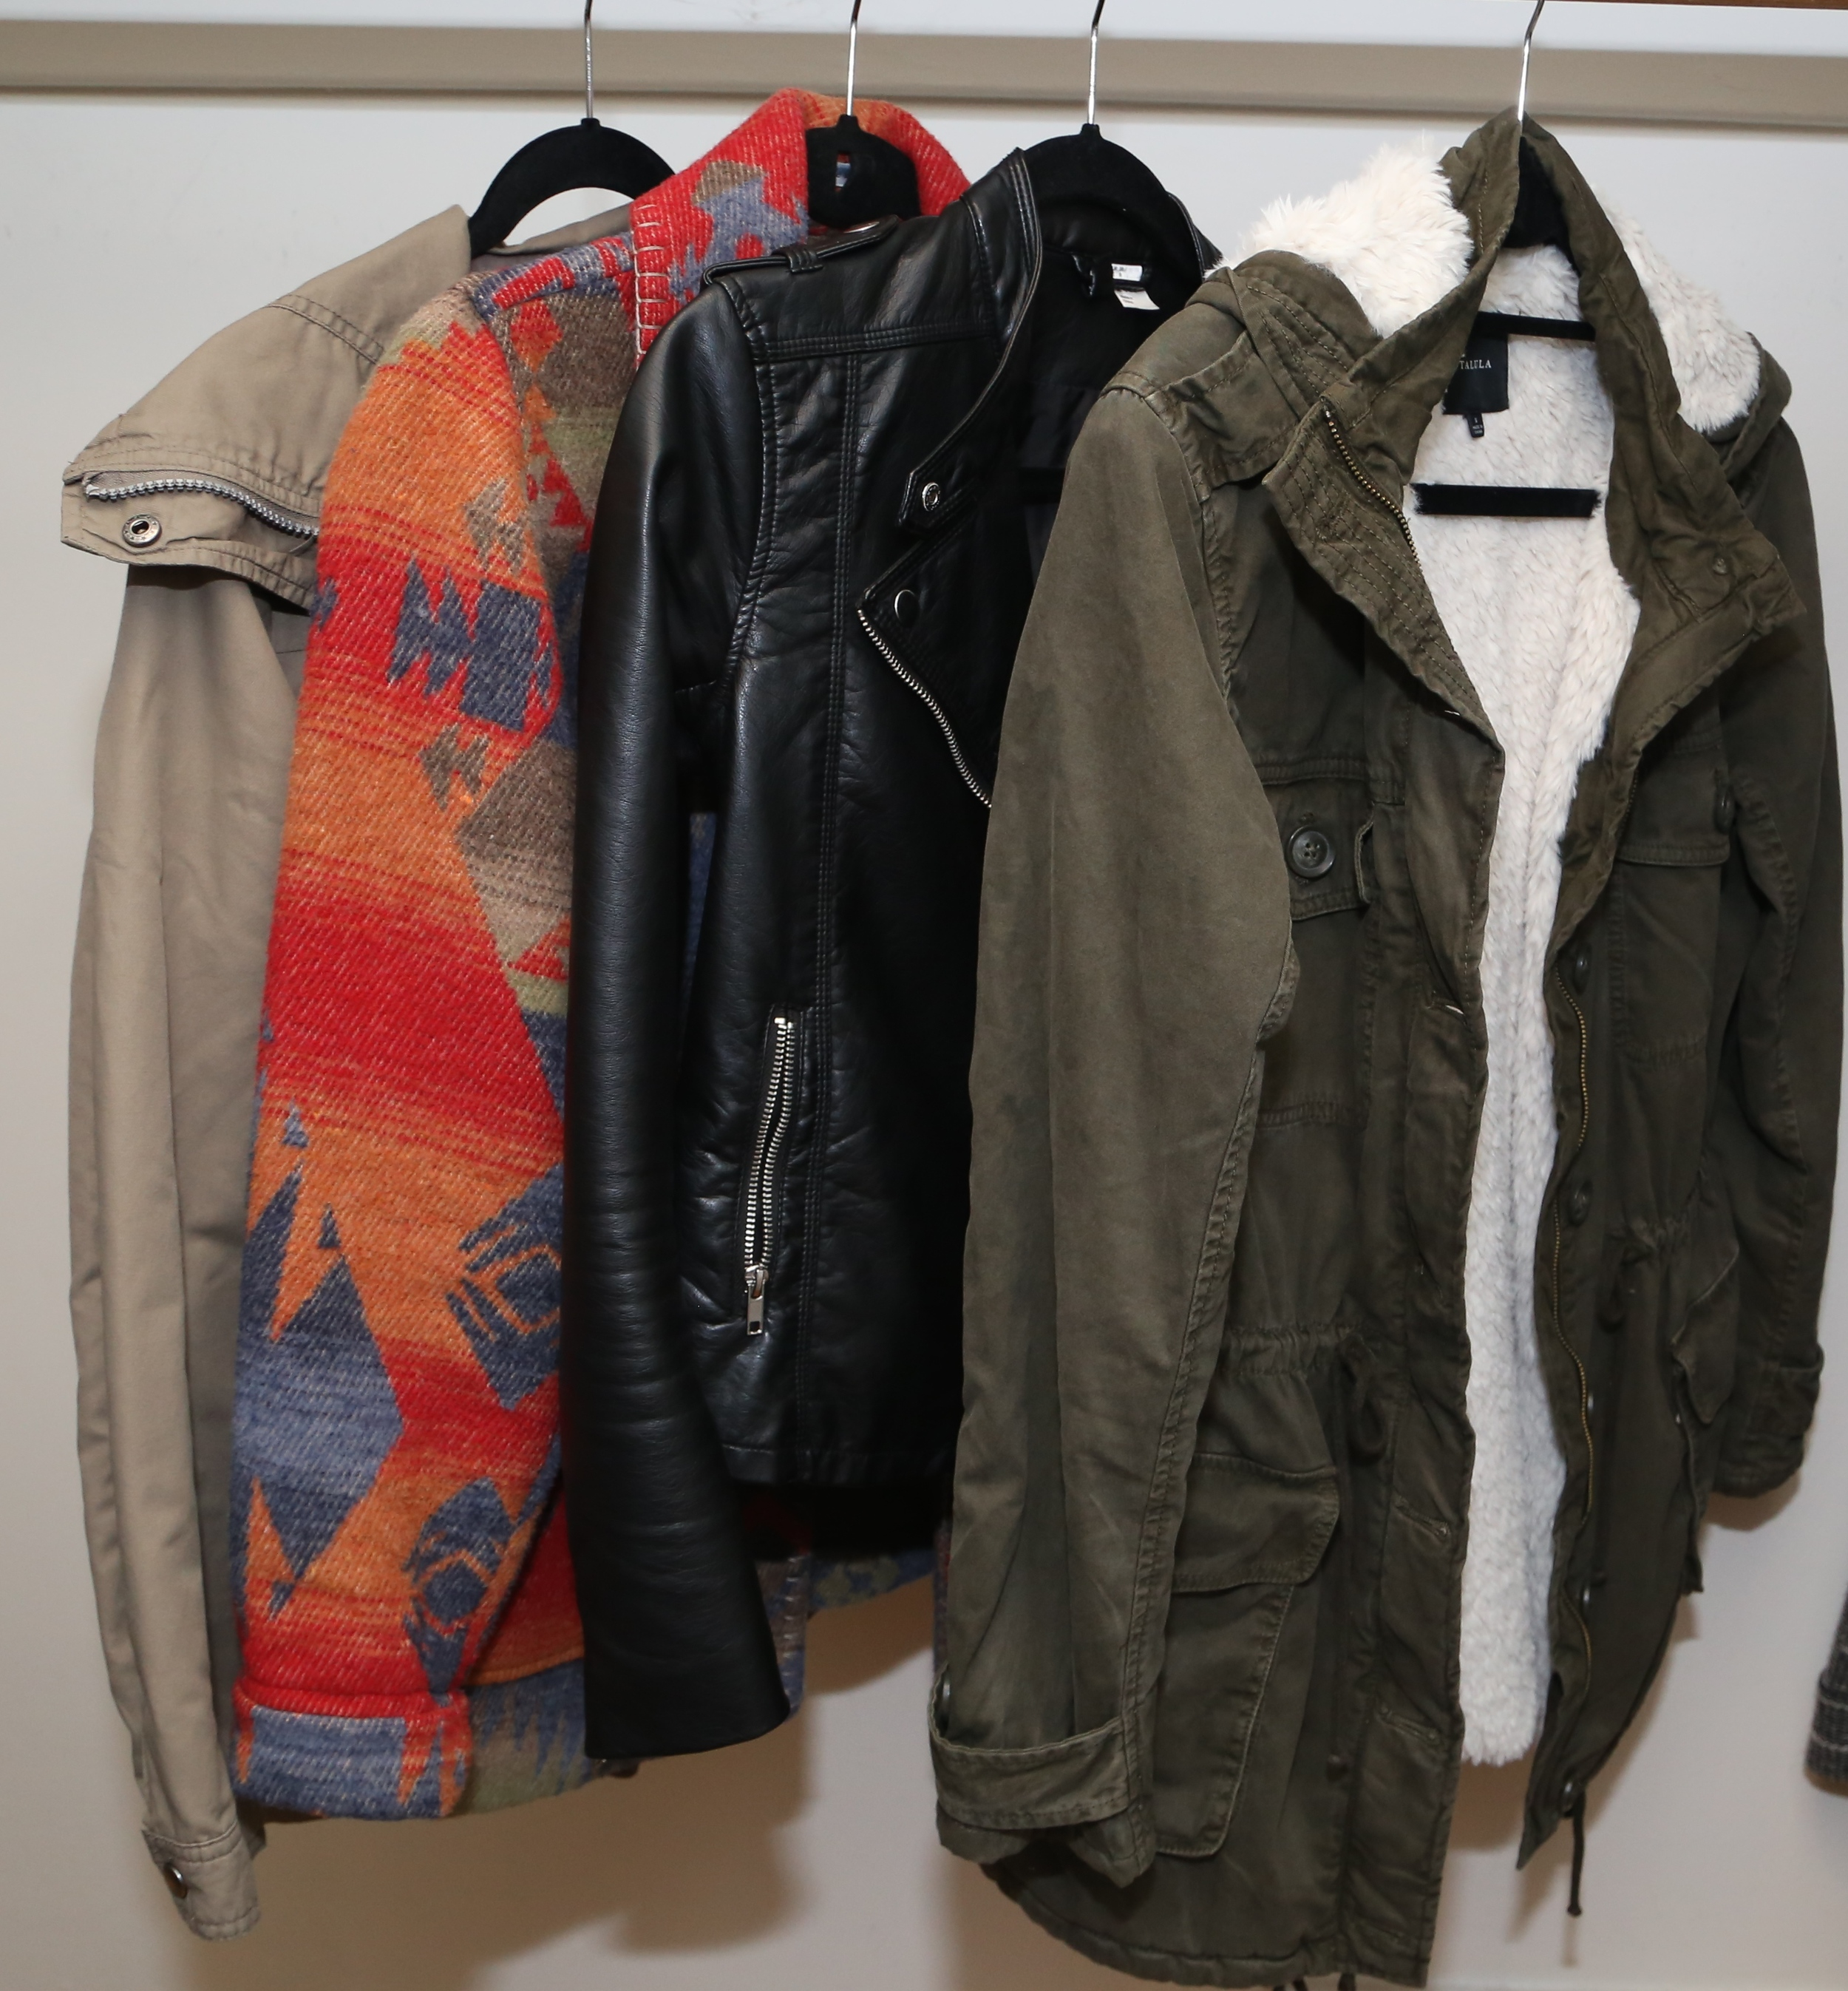 Jackets to take me through San Francisco's varying winter weather.